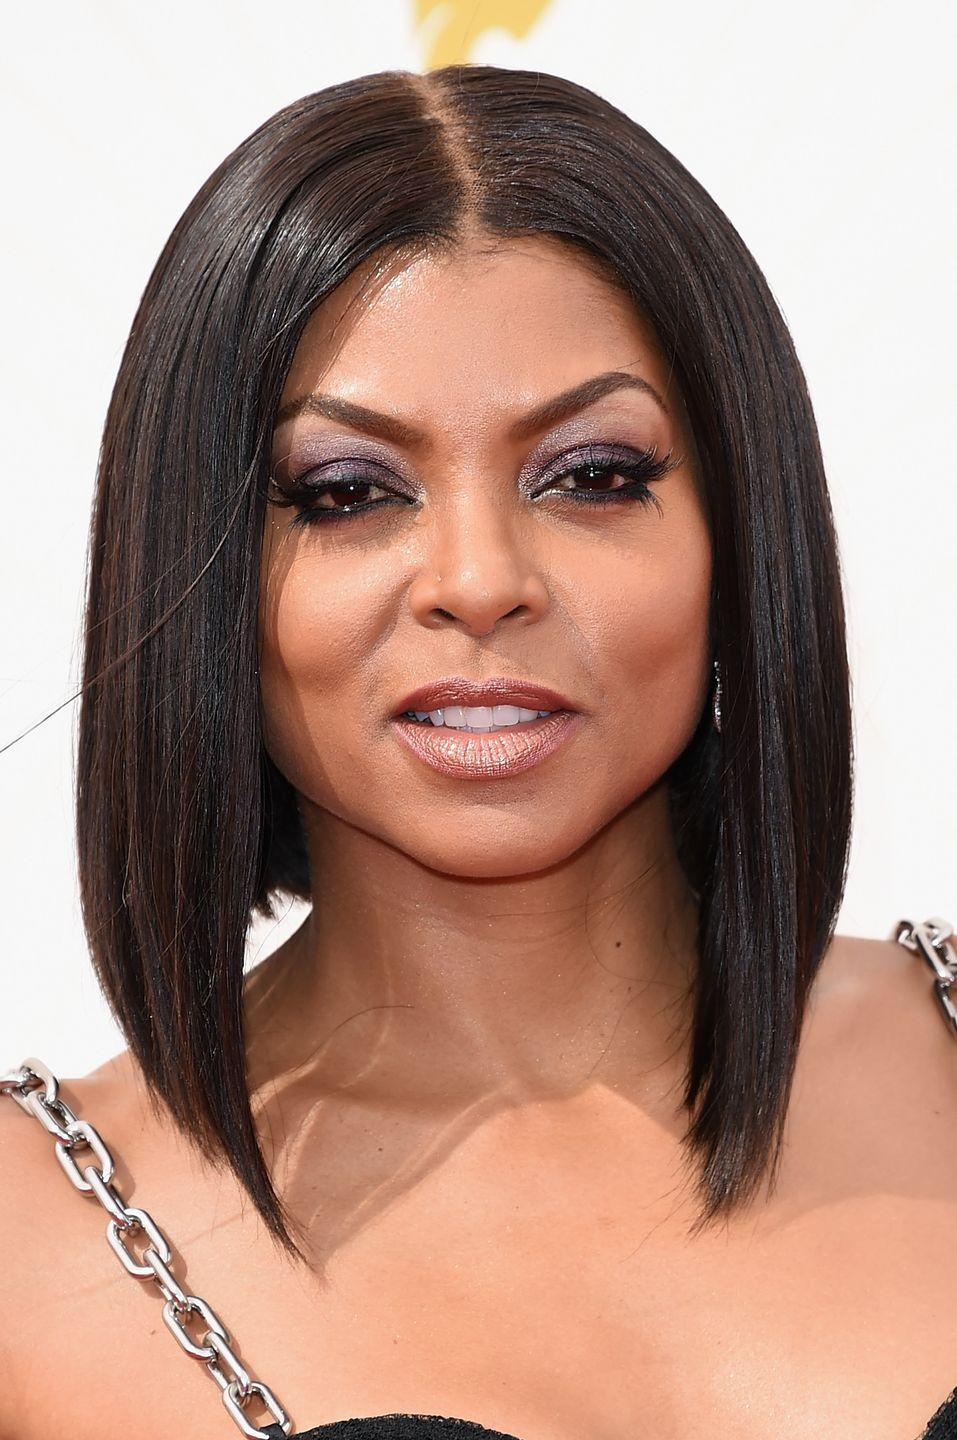 <p>If you're interested in rocking short hair, but don't know where to start, a lob (a.k.a. long bob) is a good first step. You can frame it perfectly to your face like actress <strong>Taraji P. Henson</strong> did and wear it either curly or straight. </p>